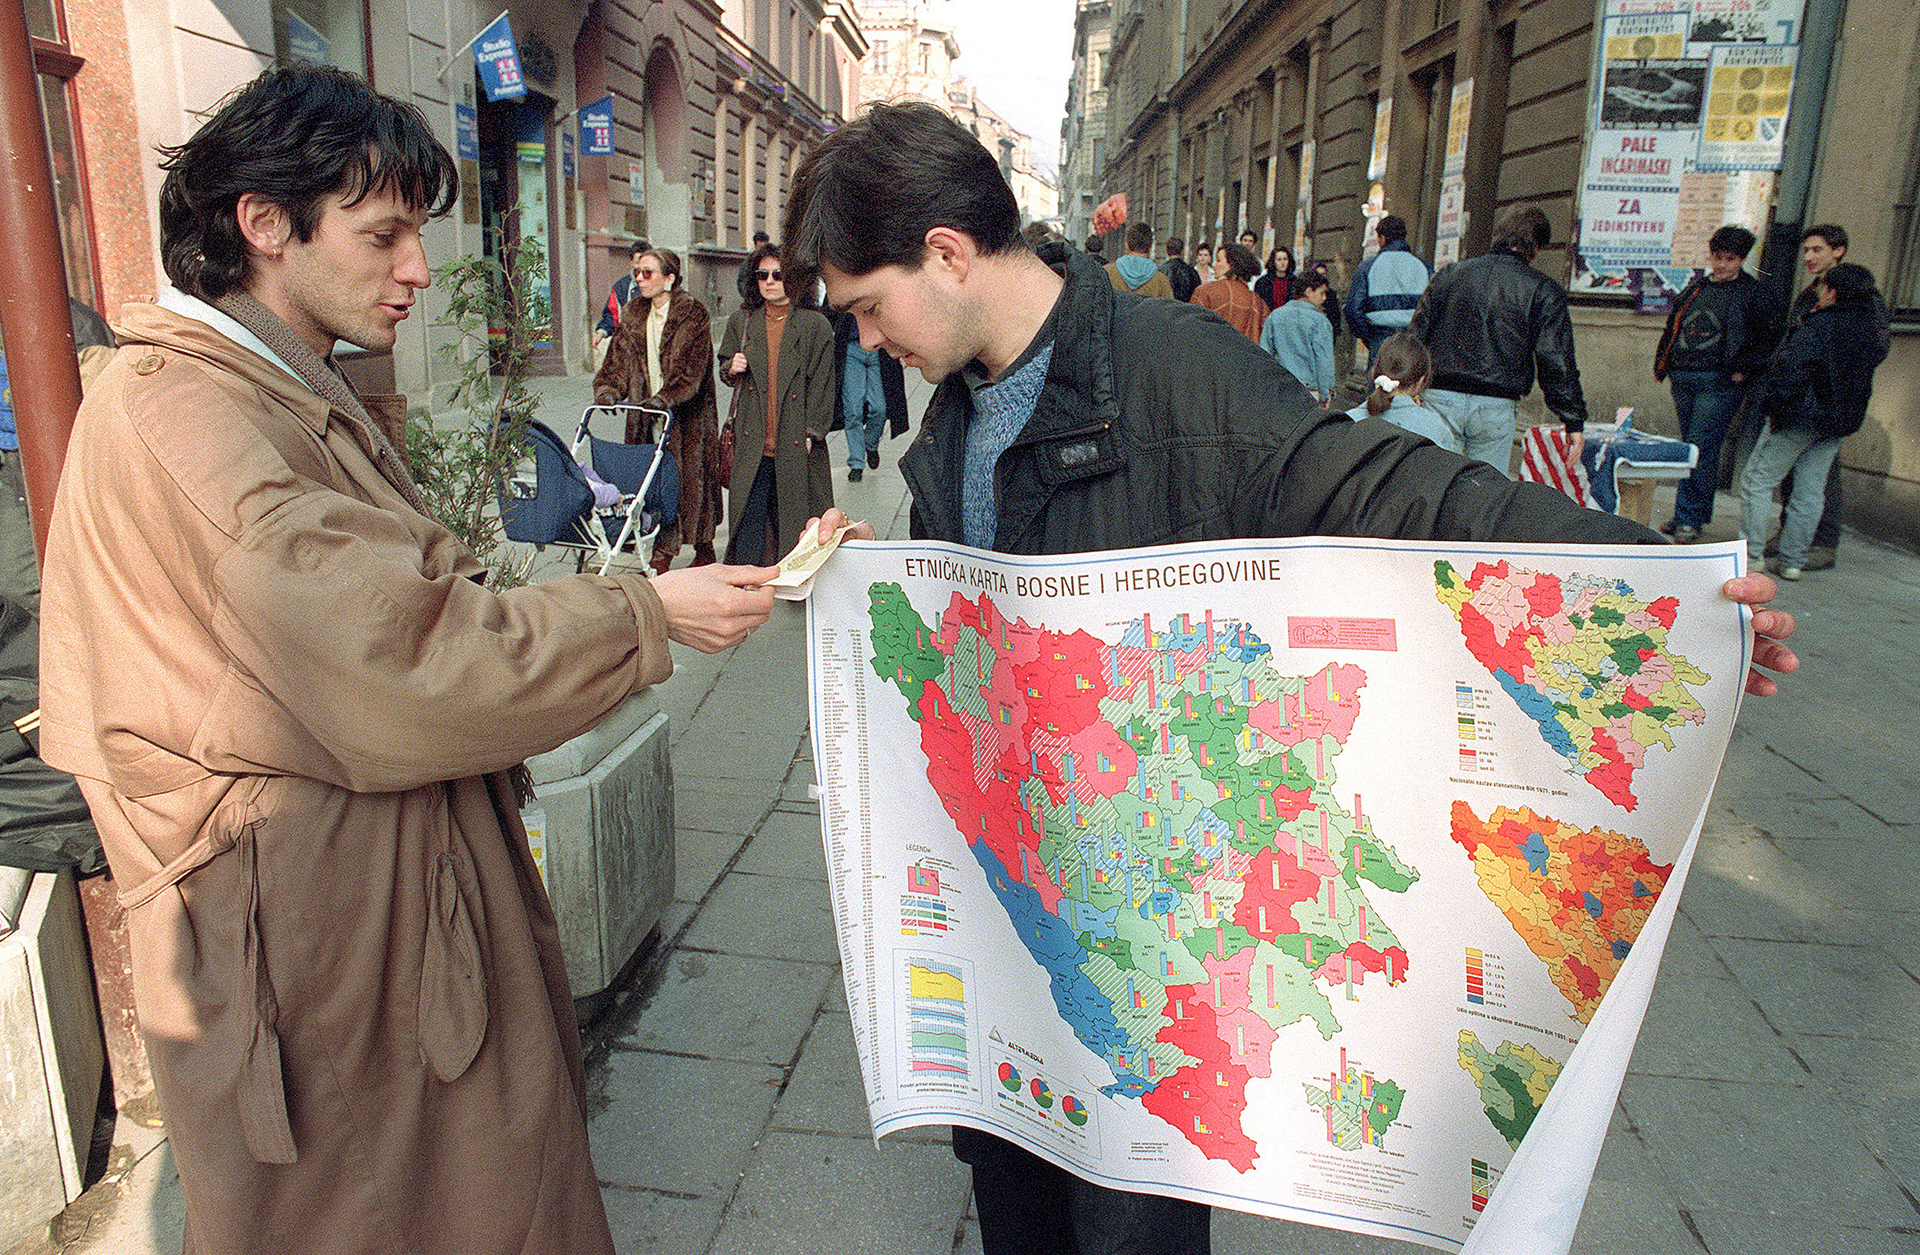 A street seller holds an ethnic distribution mag of Bosnia-Hercegovina as he talks to a fellow Bosnian in a Sarajevo shopping street 01 March 1992 while Bosnia-Hercegovina opened a second day of voting on independence. The state is the ethnic most varied in former Yugoslavia with Moslem Slavs, Croats and Serbs living together. AFP PHOTO MLADEN ANTONOV         (Photo credit should read MLADEN ANTONOV/AFP/Getty Images)